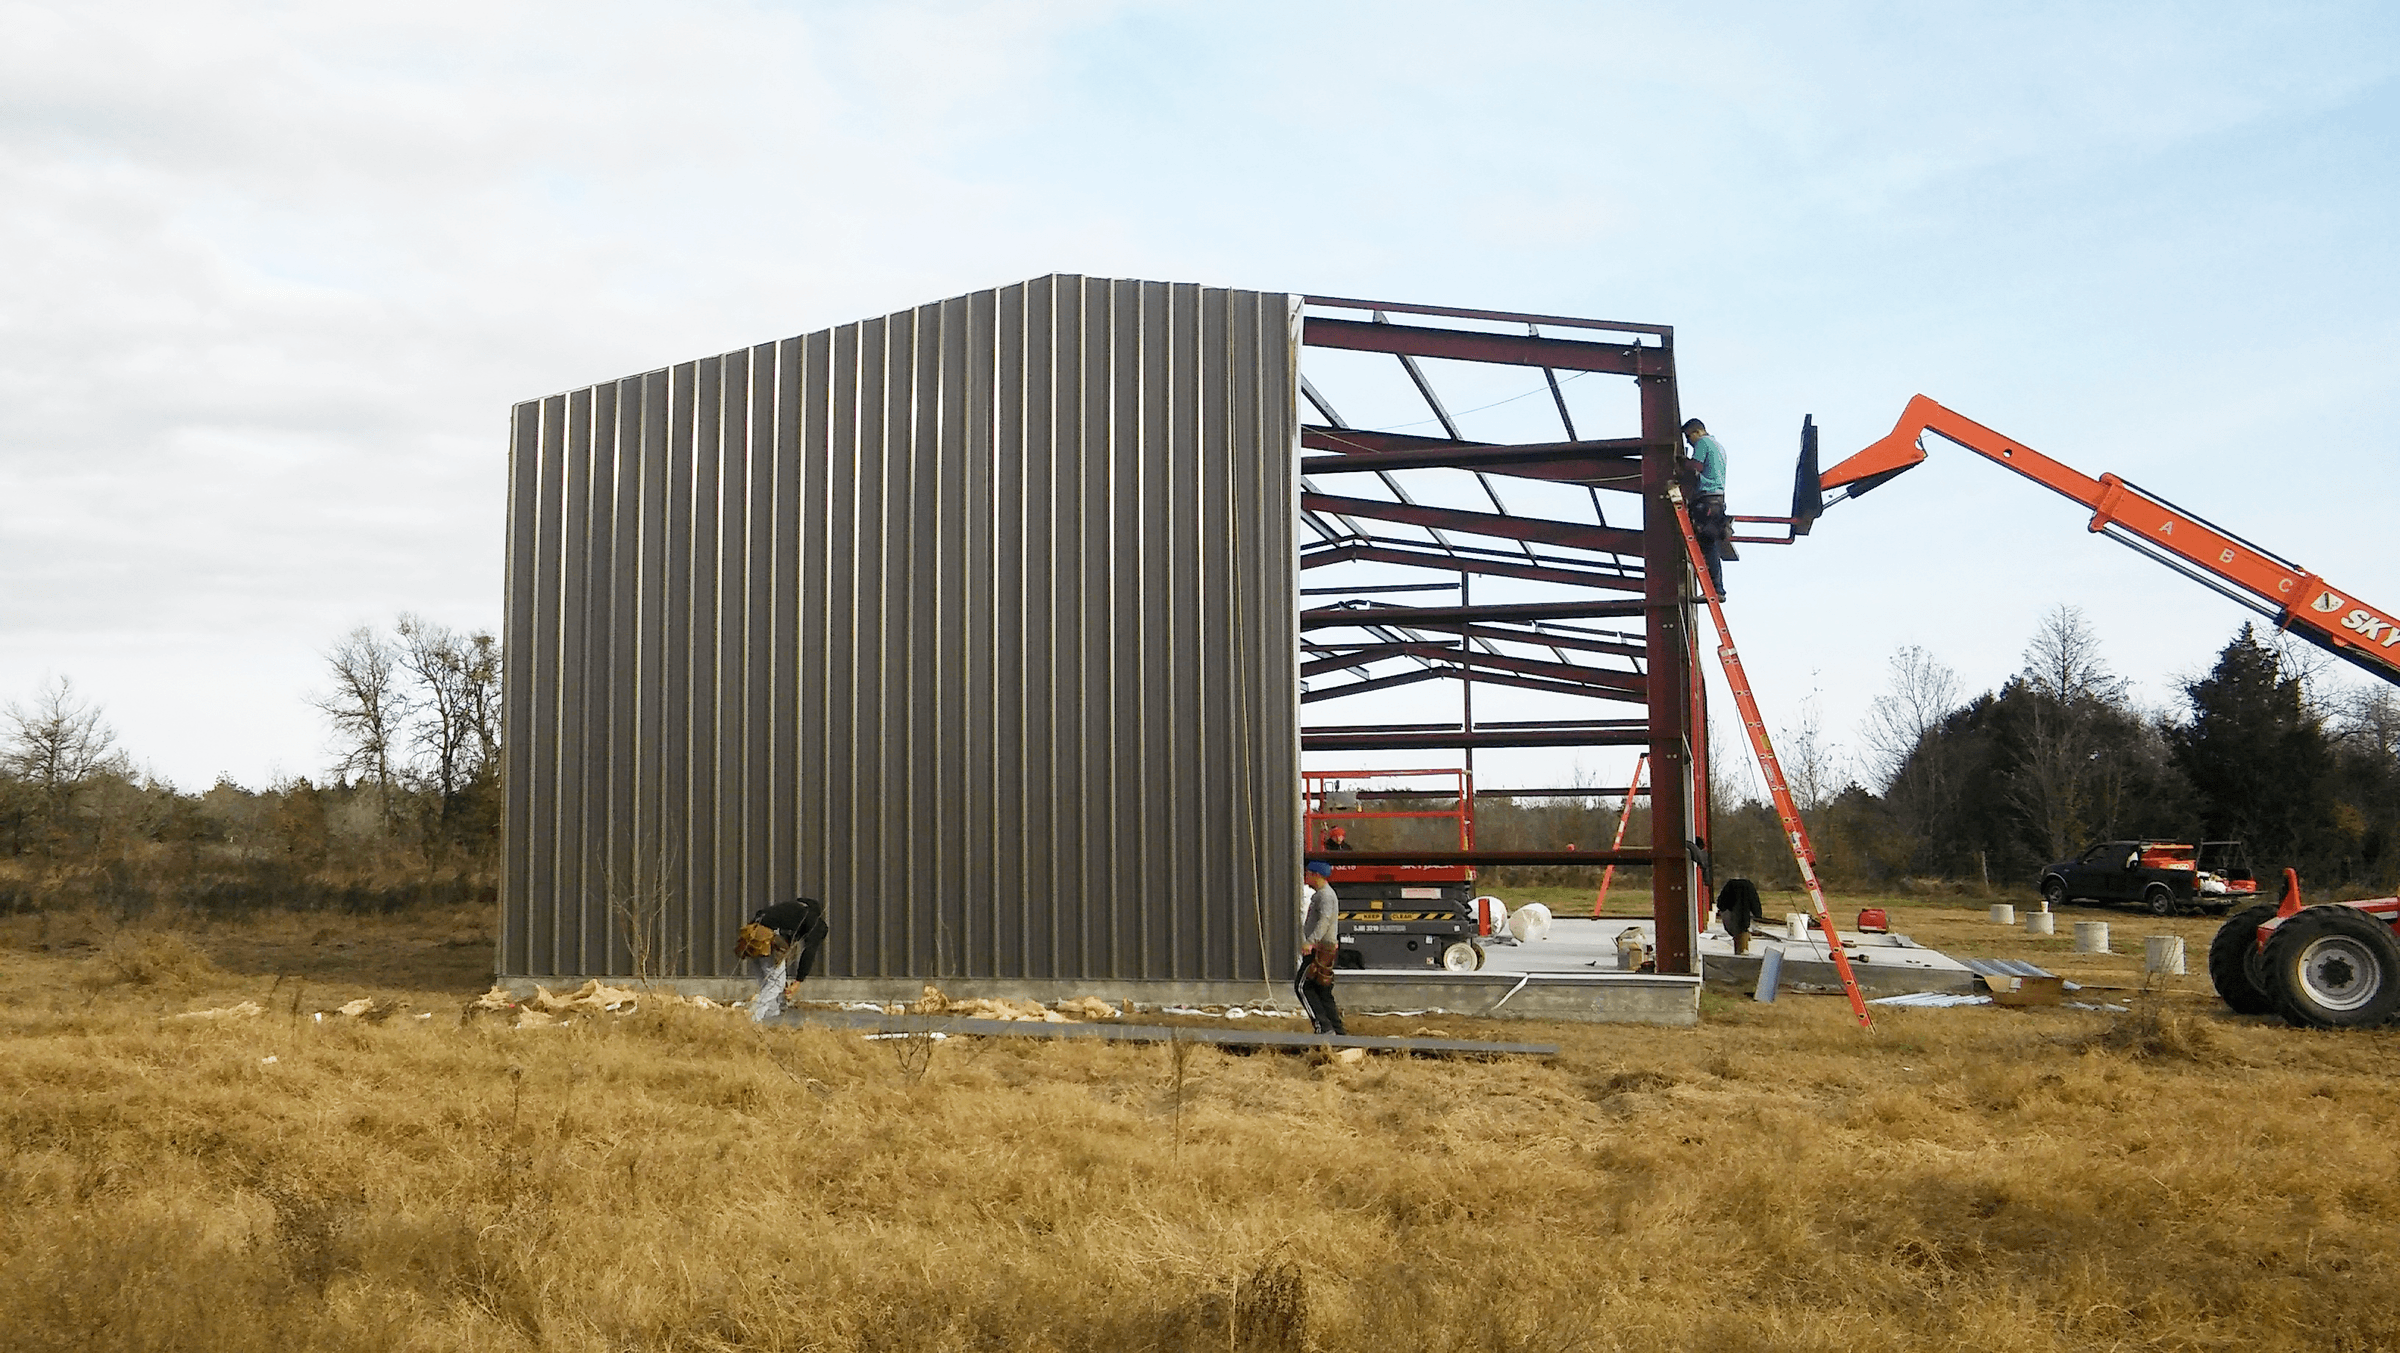 More metal walls and insulation.